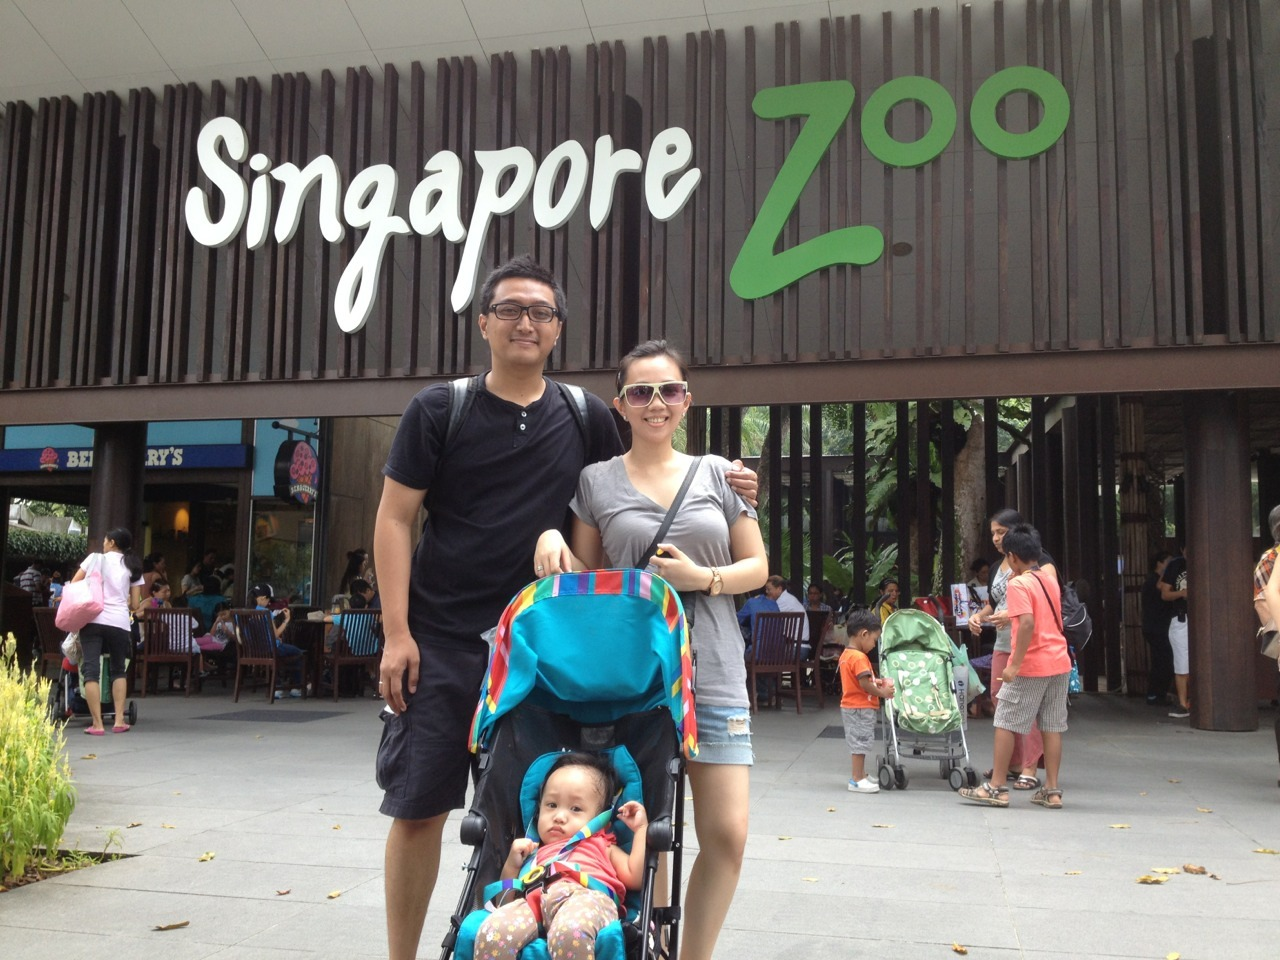 Singapore Trip 2013. Day 2.  We got to the Singapore Zoo a bit late, around 11ish and there's already a long queue to purchase the tickets. Should've bought them online before coming. After 45 minutes of queuing to buy the tickets, we got in. It was a hot sunny day and lots of people, too. Passing by some birds, pink flamingos, and orang utans, we went straight to elephants. You've recognized elephants from books and dolls but now they're infront of you, doing mud bath and swimming. After the elephants, we're looking for KFC to grab lunch. When we got there, KFC was jam packed with parents and kids and there's a pretty large water playground like Playparq infront of KFC. Since we didn't bring your swimming suit, we bought at the store and you played for half an hour or so. On our way out we got to see some giraffes, rhinos, even heard roaring lions & tigers, but you went asleep somewhere after giraffes. Finally we decided to go back to the hotel cos the sun was too hot and we're exhausted. Back in hotel, cleaned ourselves up and head to ION Orchard for dinner.